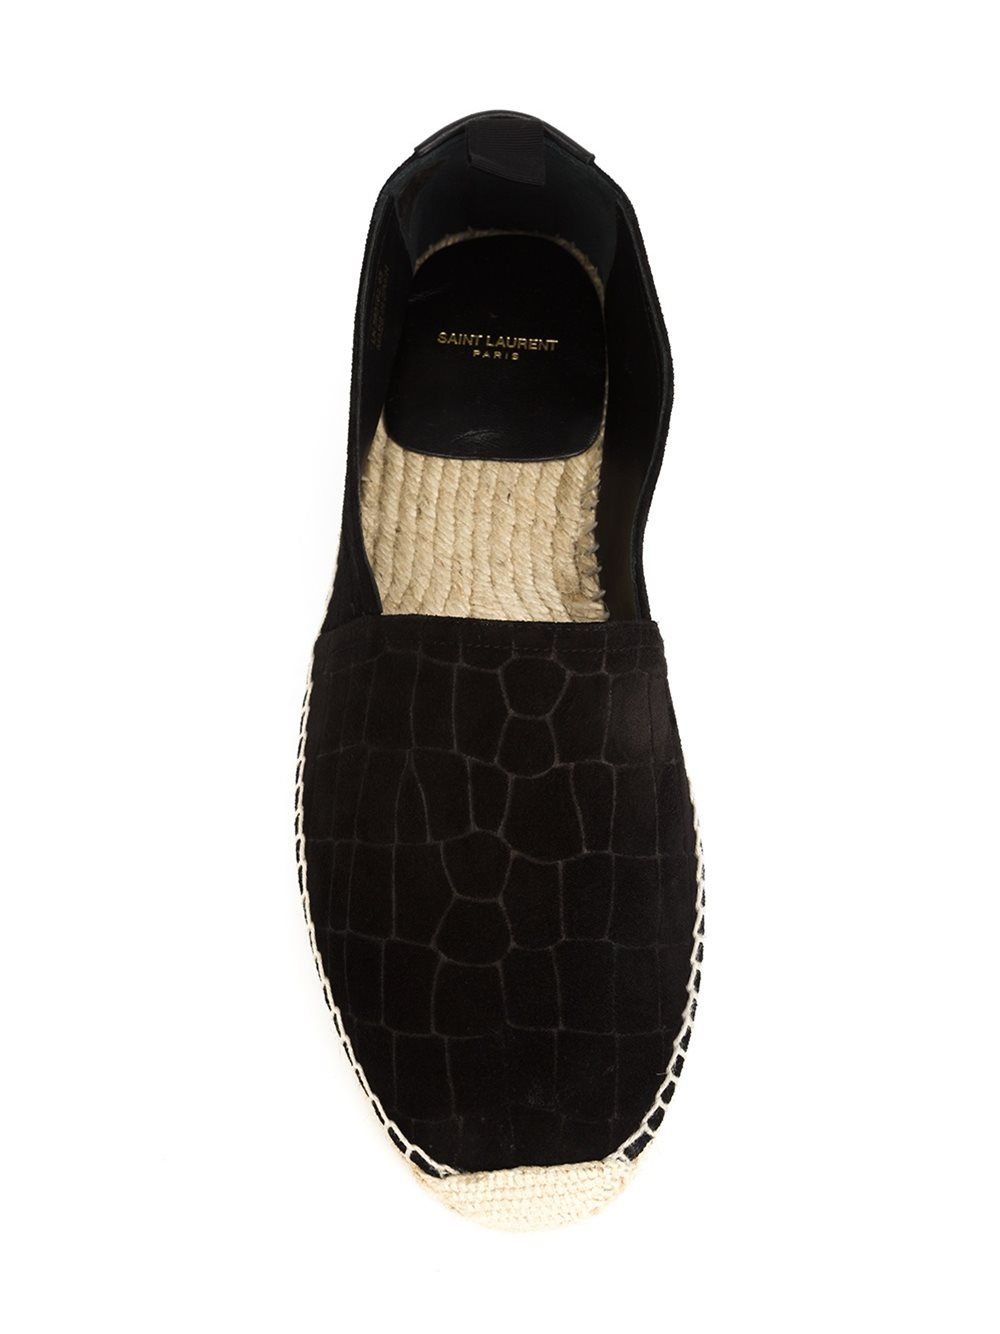 yves saint laurent chaussures online, Saint Laurent